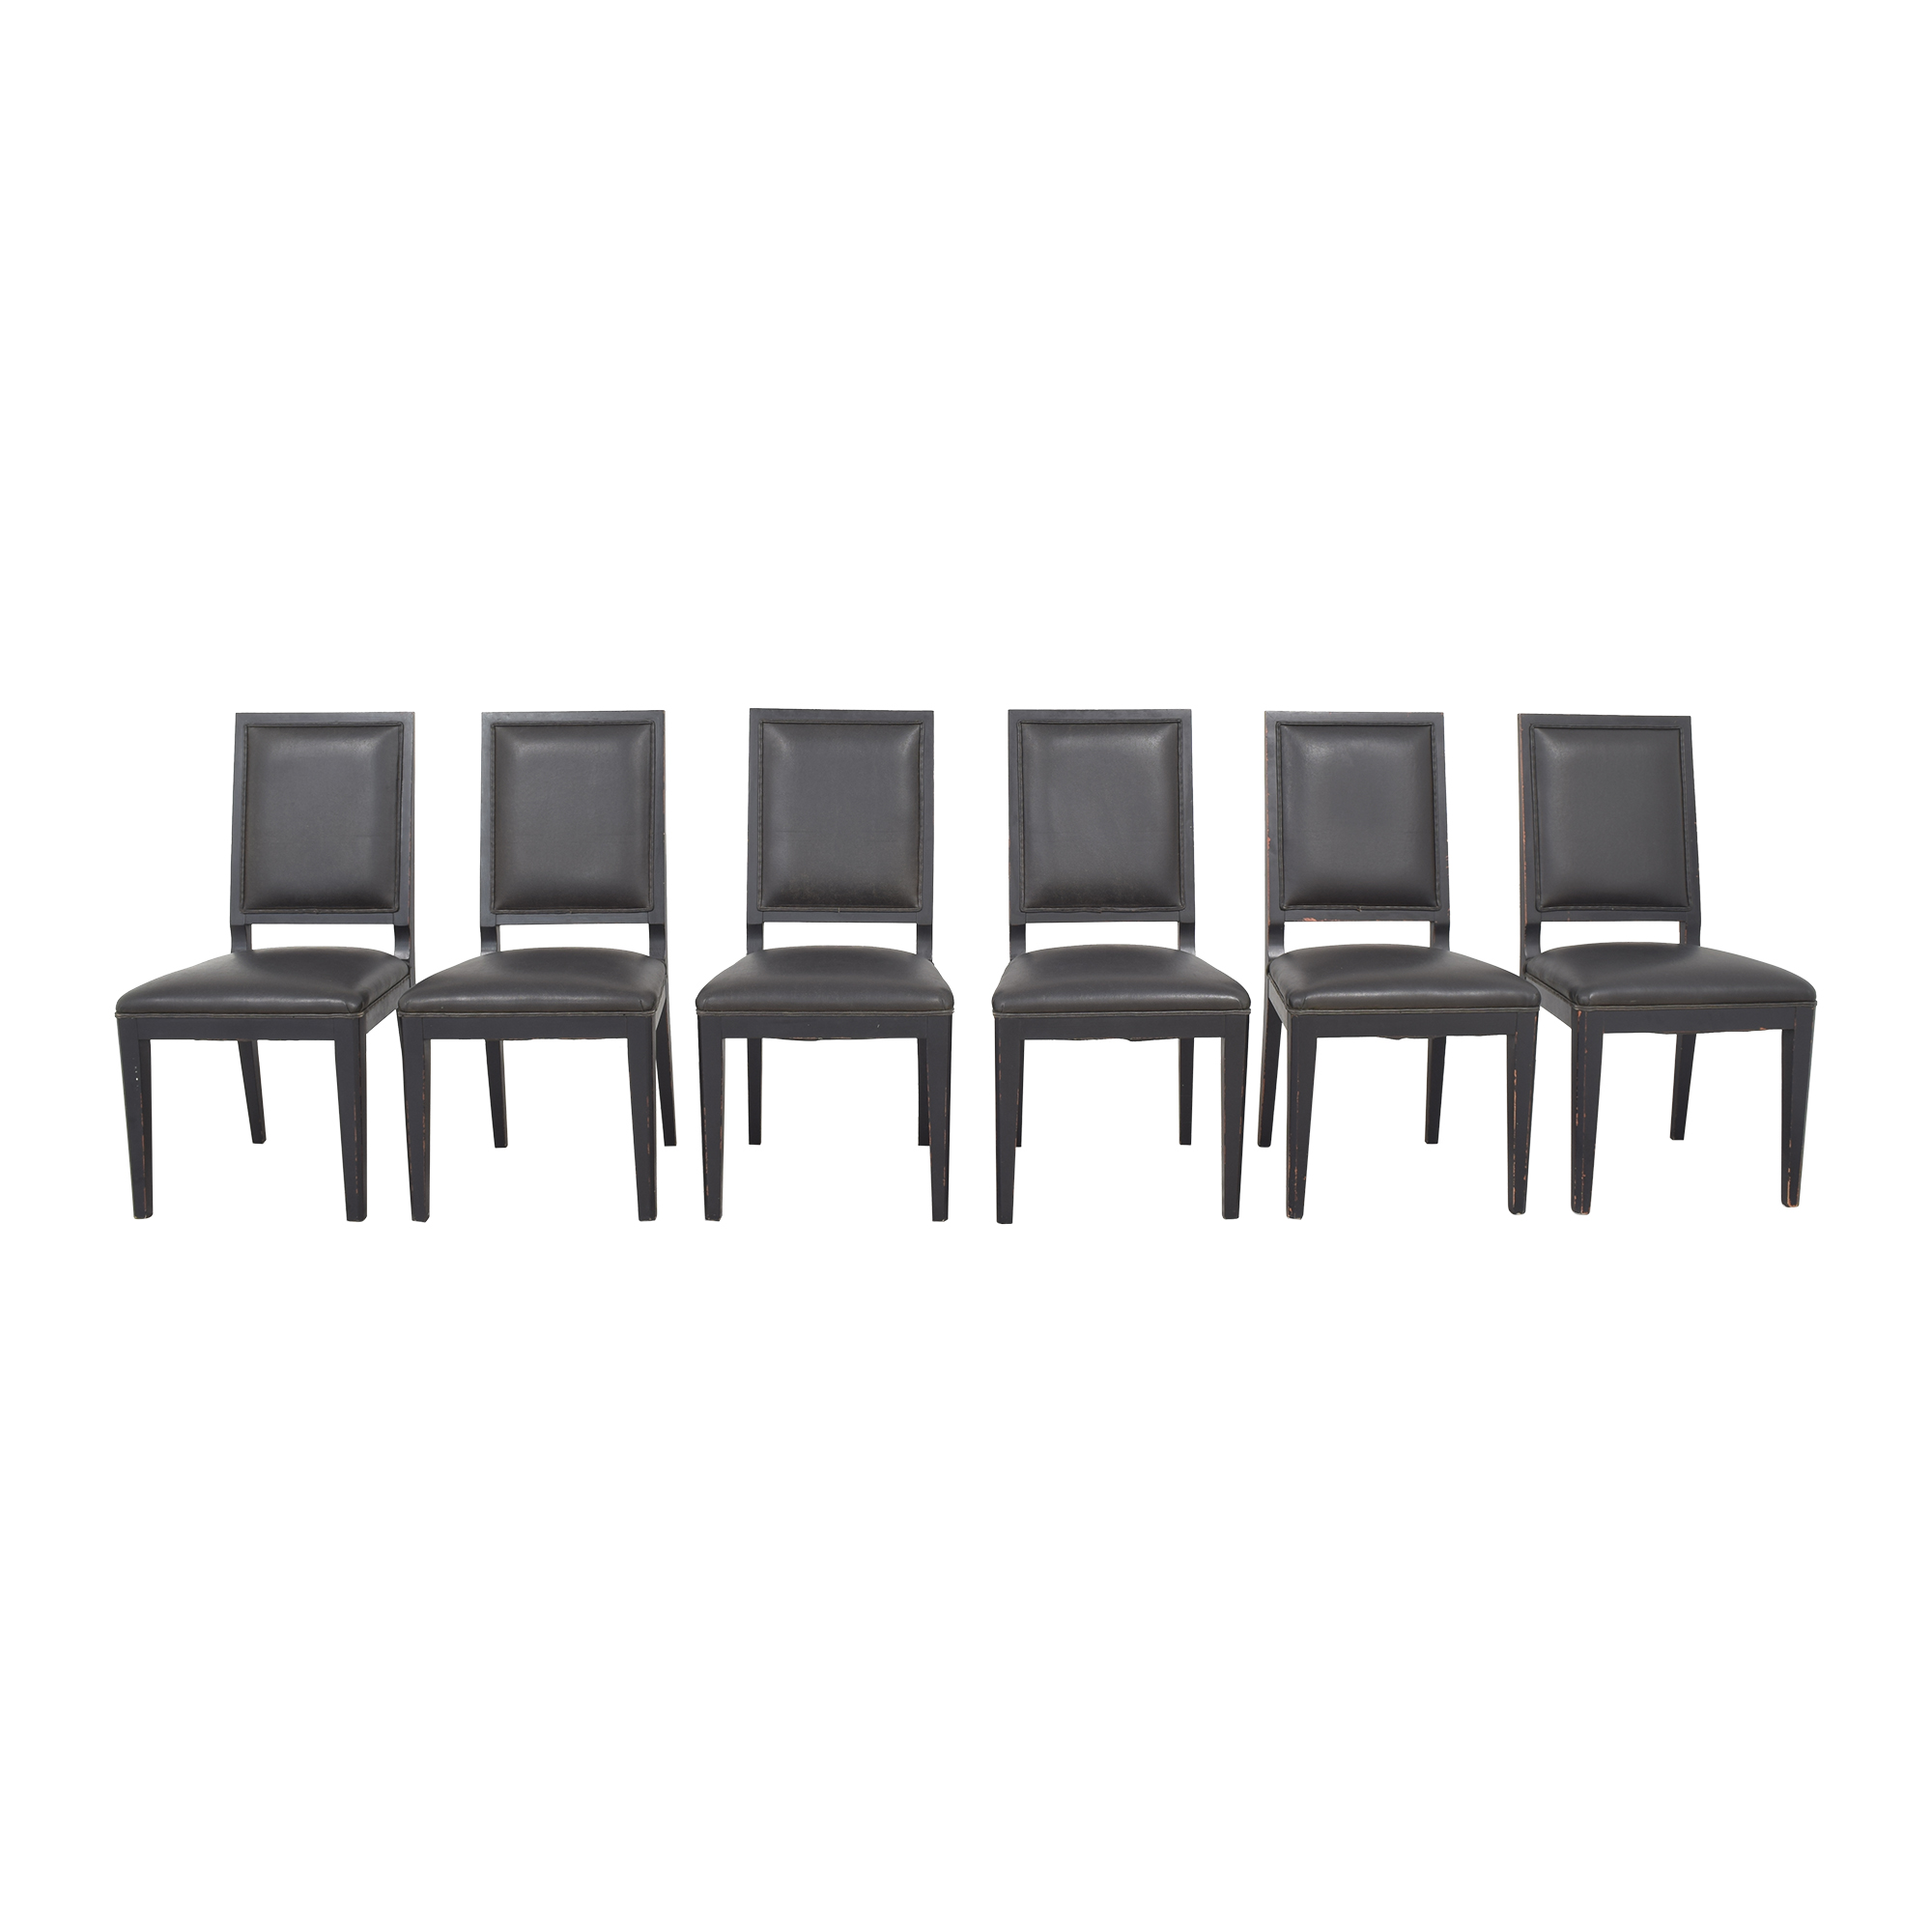 Crate & Barrel Crate & Barrel Sonata Dining Chairs used